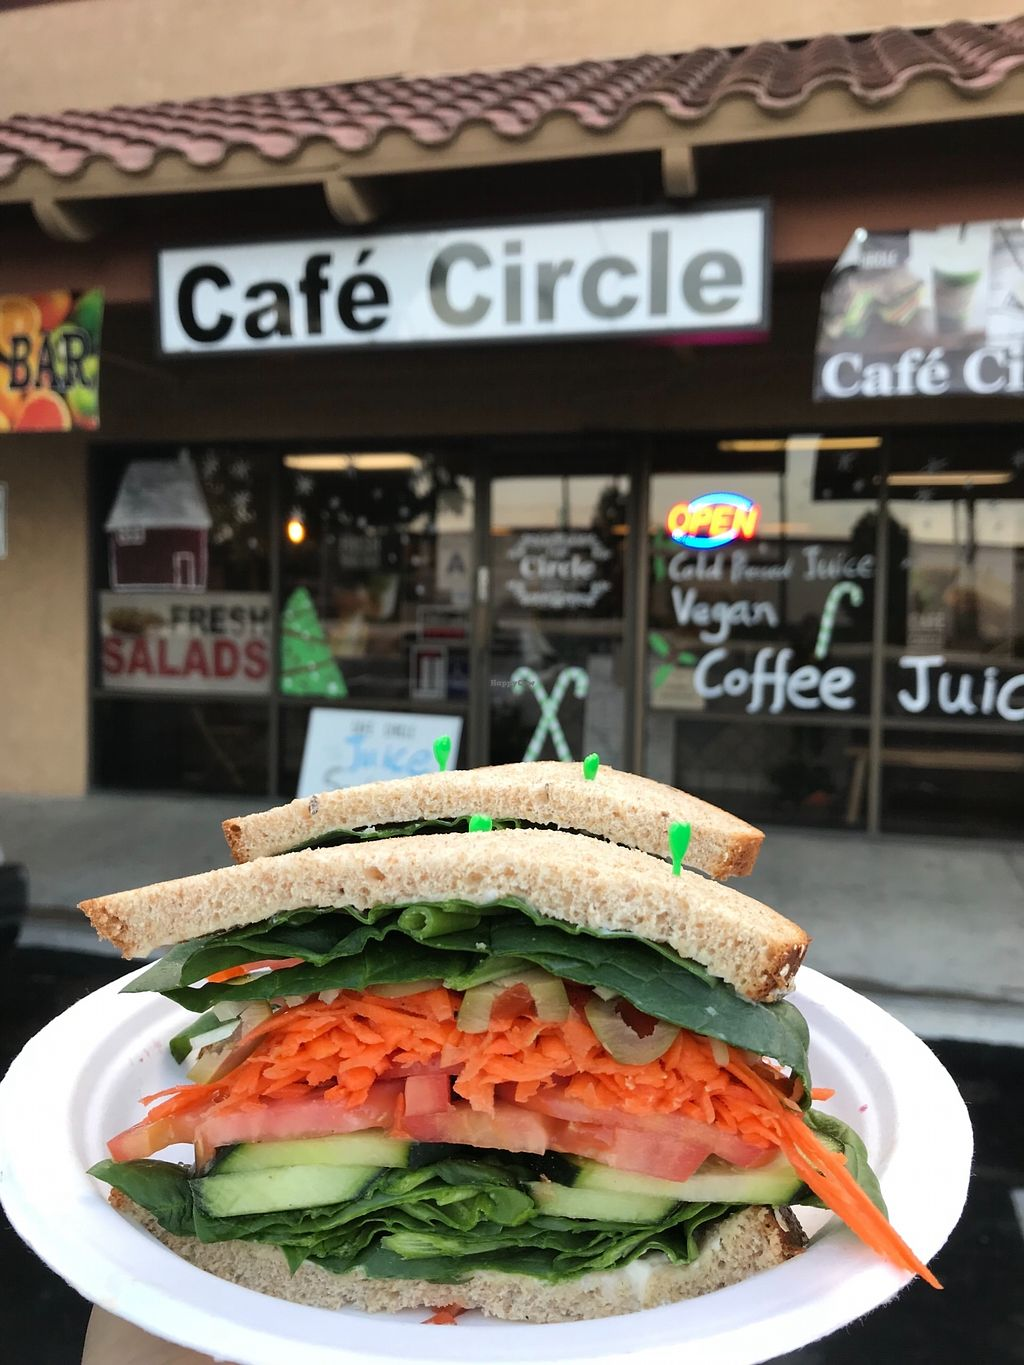 """Photo of Cafe Circle  by <a href=""""/members/profile/happy1"""">happy1</a> <br/>Vegan spinach sandwich <br/> January 31, 2018  - <a href='/contact/abuse/image/106681/352974'>Report</a>"""